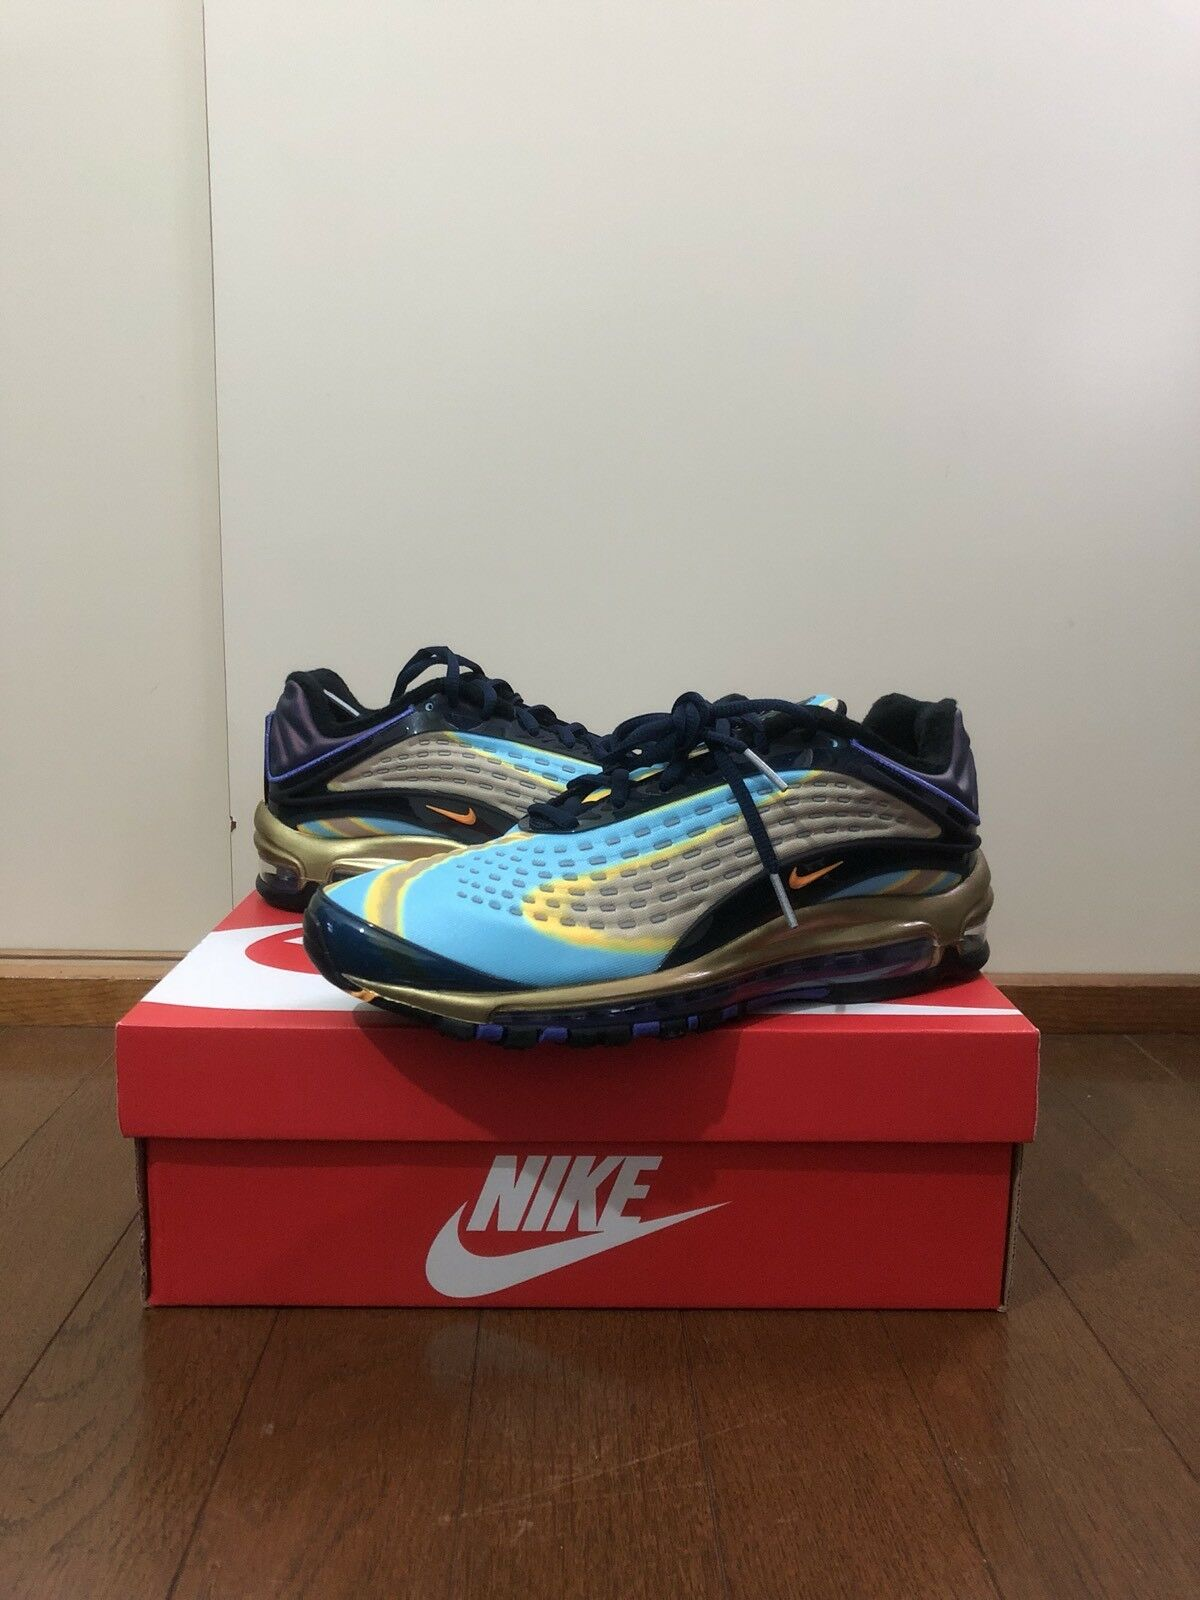 Nike Air Max Deluxe BNWT Größe 8 Brand New DS DS DS c09536